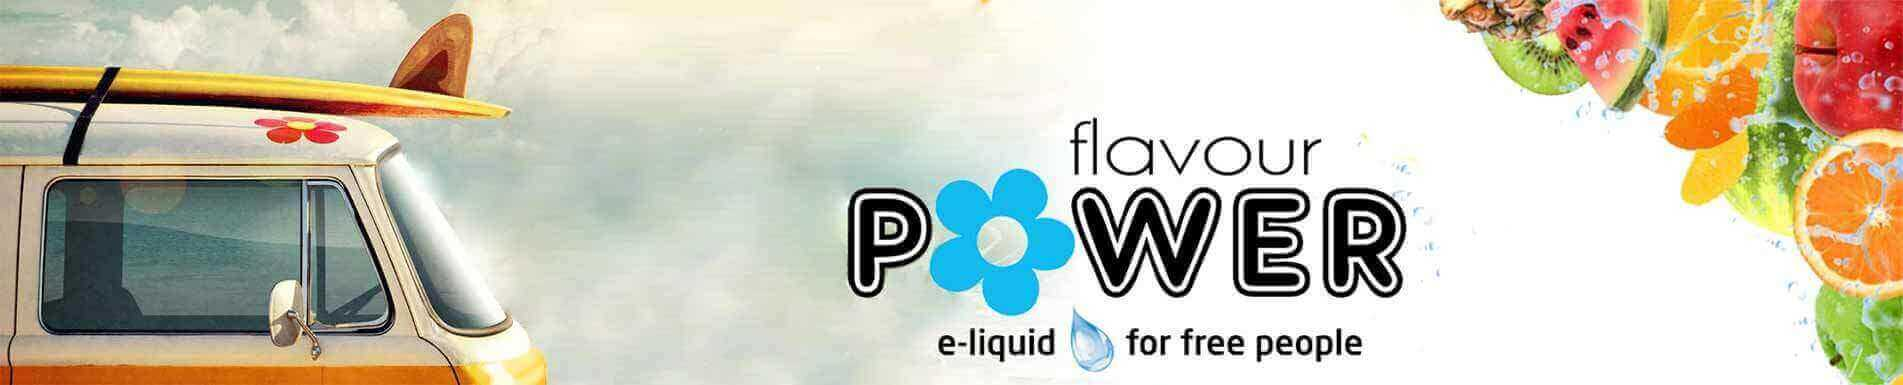 flavour power e-liquid